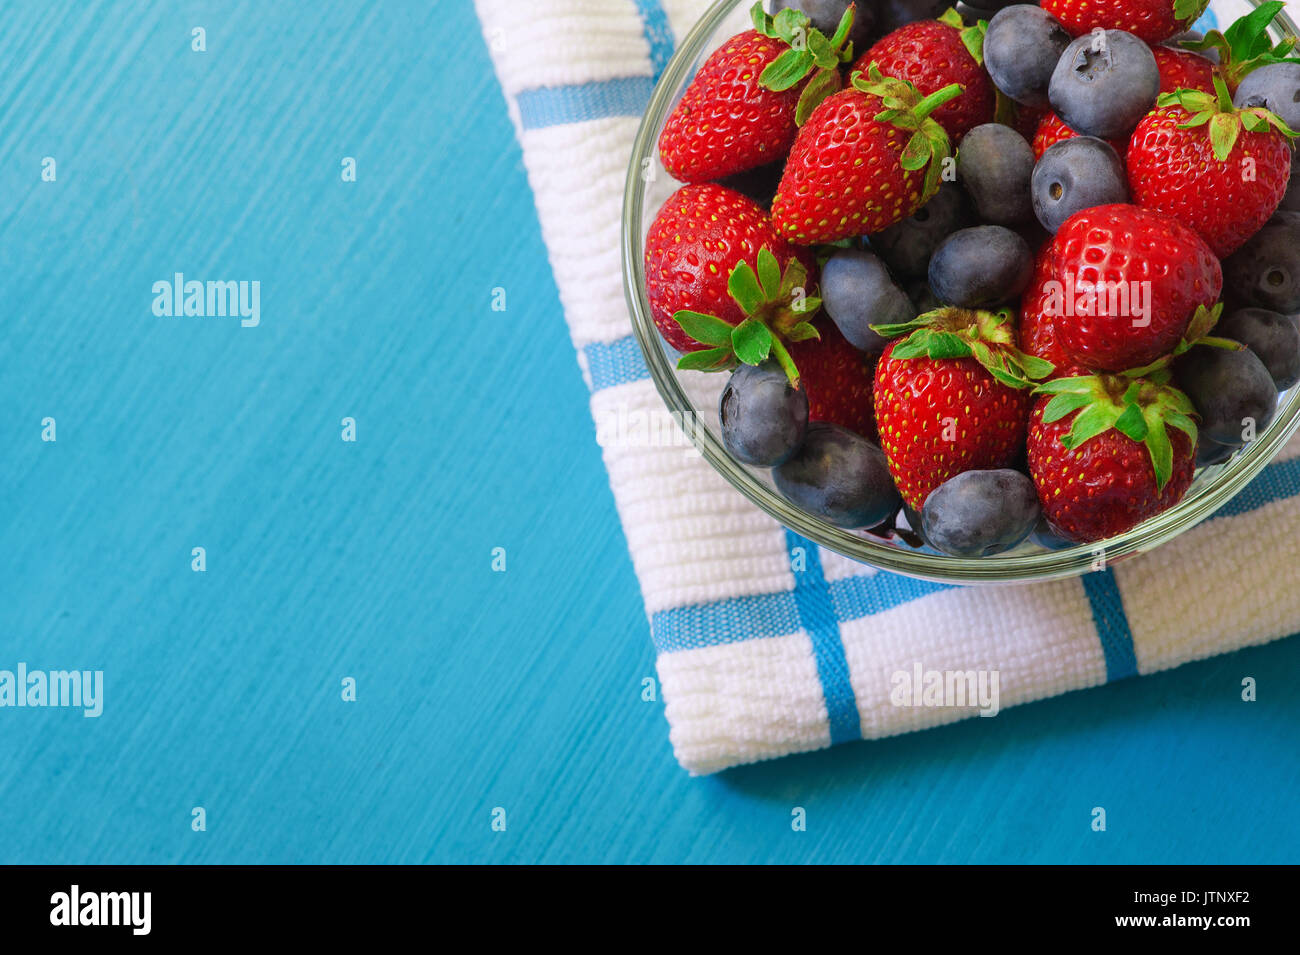 Glass bowl with assortment berries blueberries, strawberries and blackberries at white textile napkin over blue wooden table. Natural day light. Top v - Stock Image